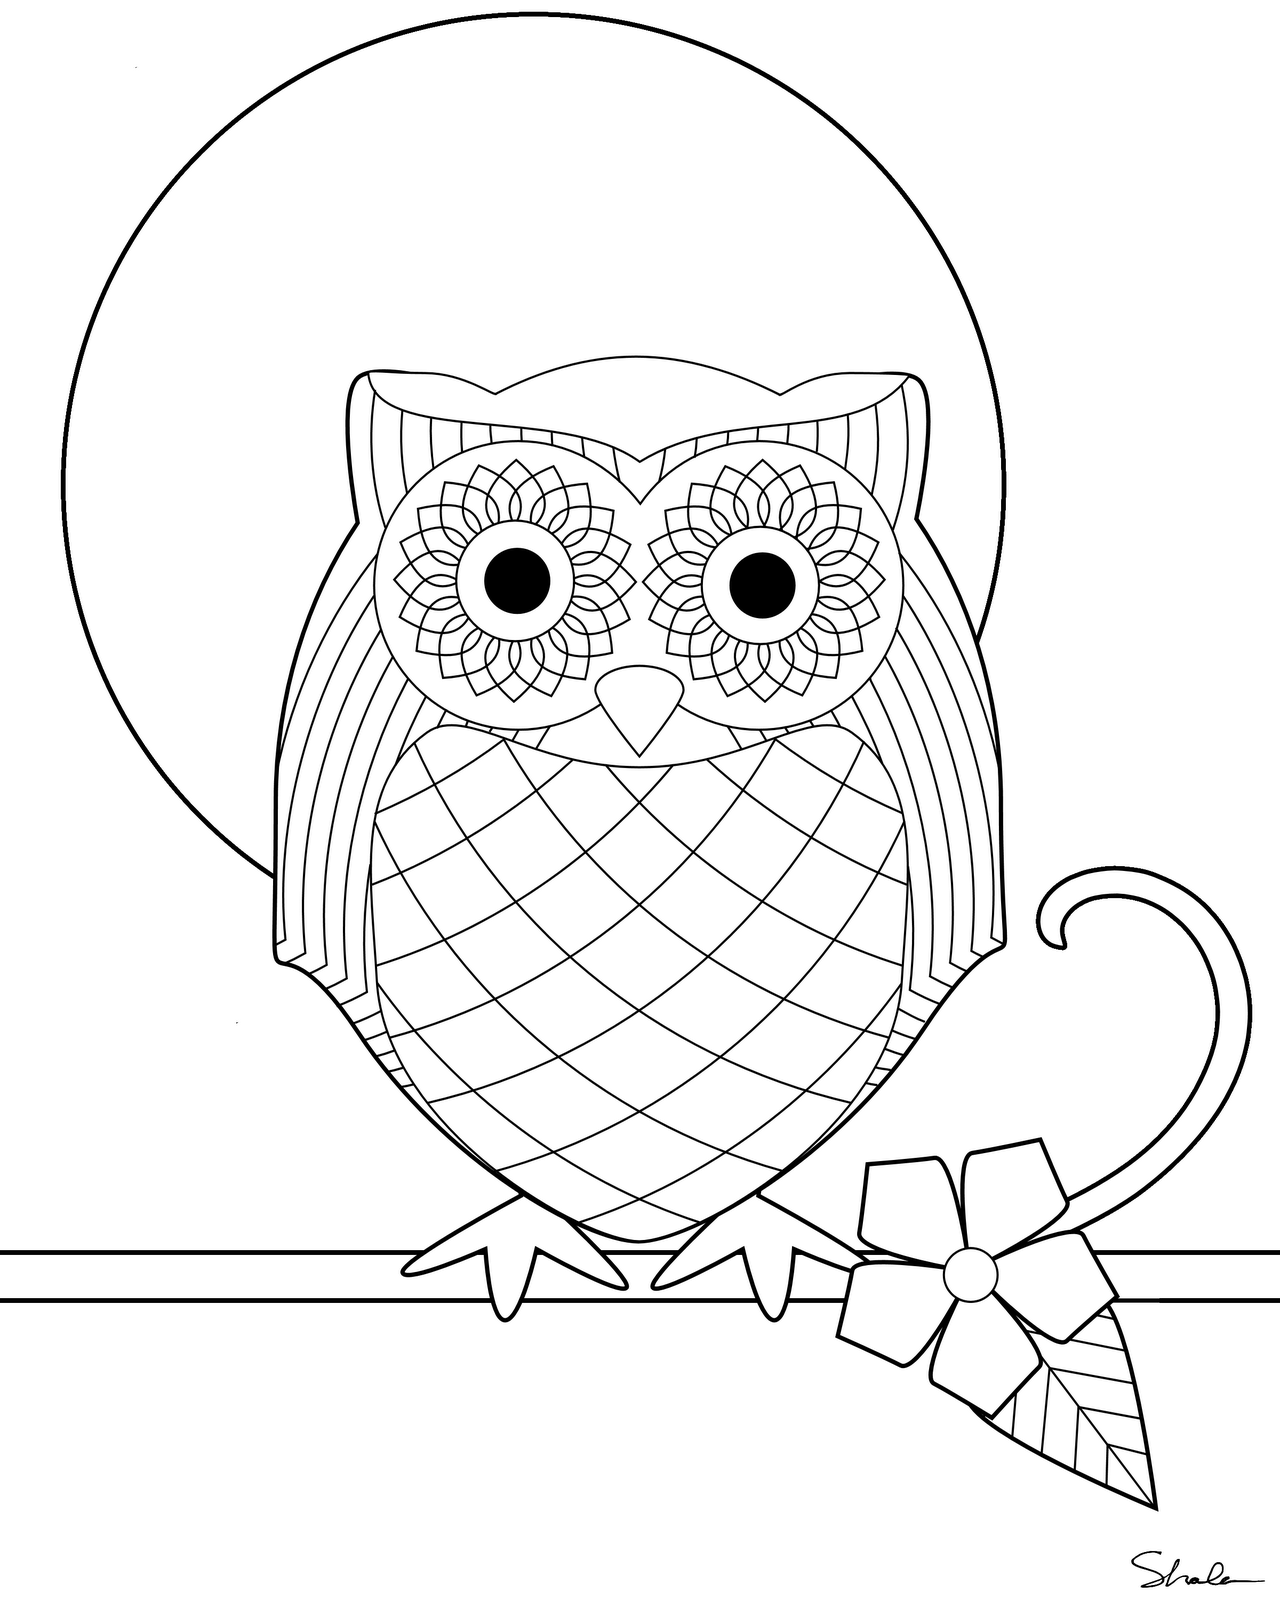 Childrens online colouring book - Owl Coloring Pictures For Free Free Online Printable Coloring Pages Sheets For Kids Get The Latest Free Owl Coloring Pictures For Free Images